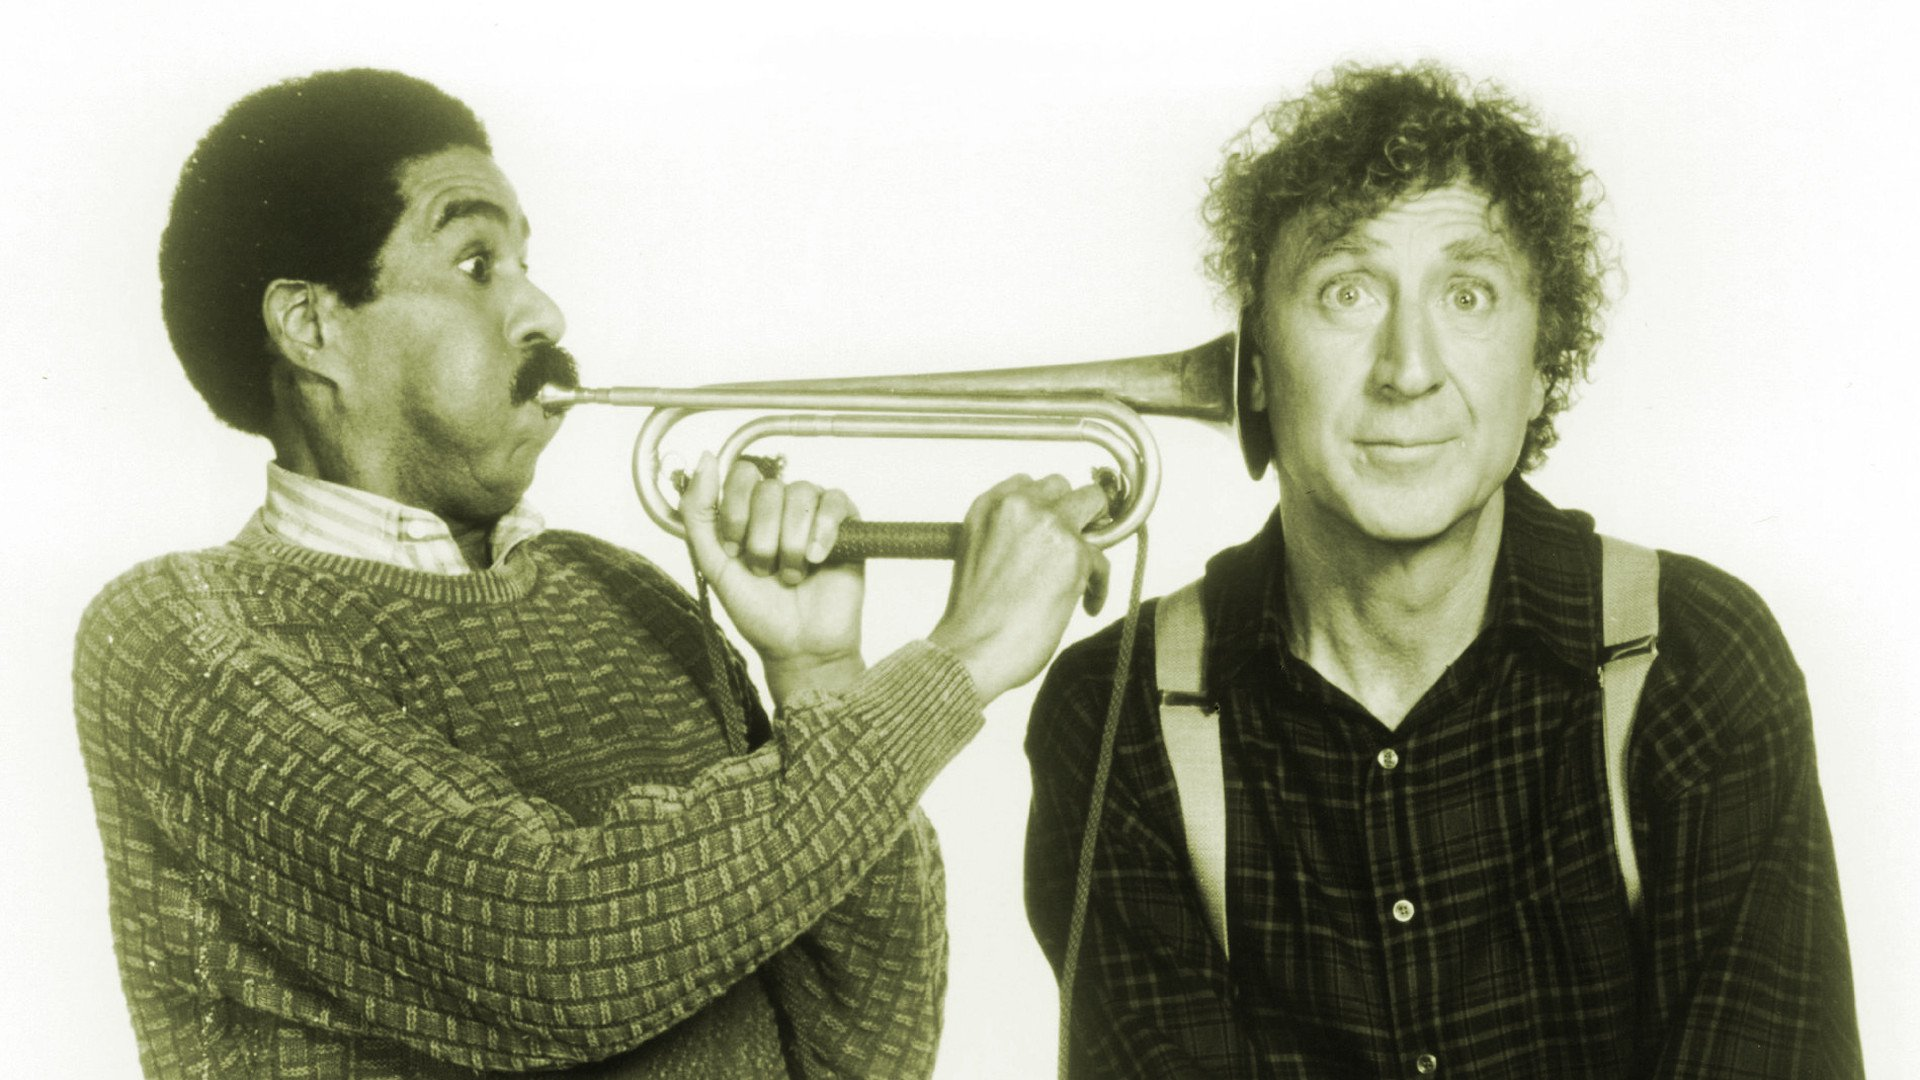 Non guardarmi non ti sento - See No Evil Hear No Evil Gene Wilder e Richard Pryor